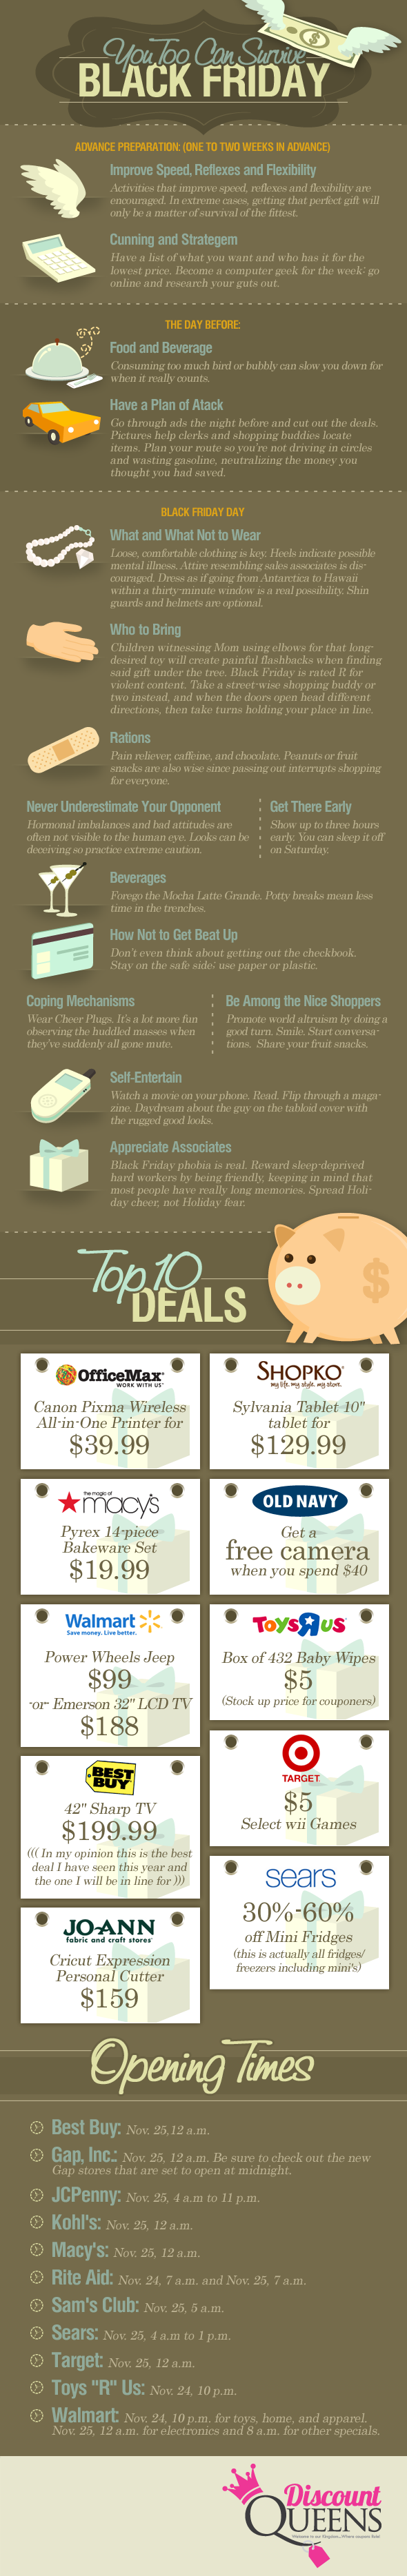 BlackFridayInfographic